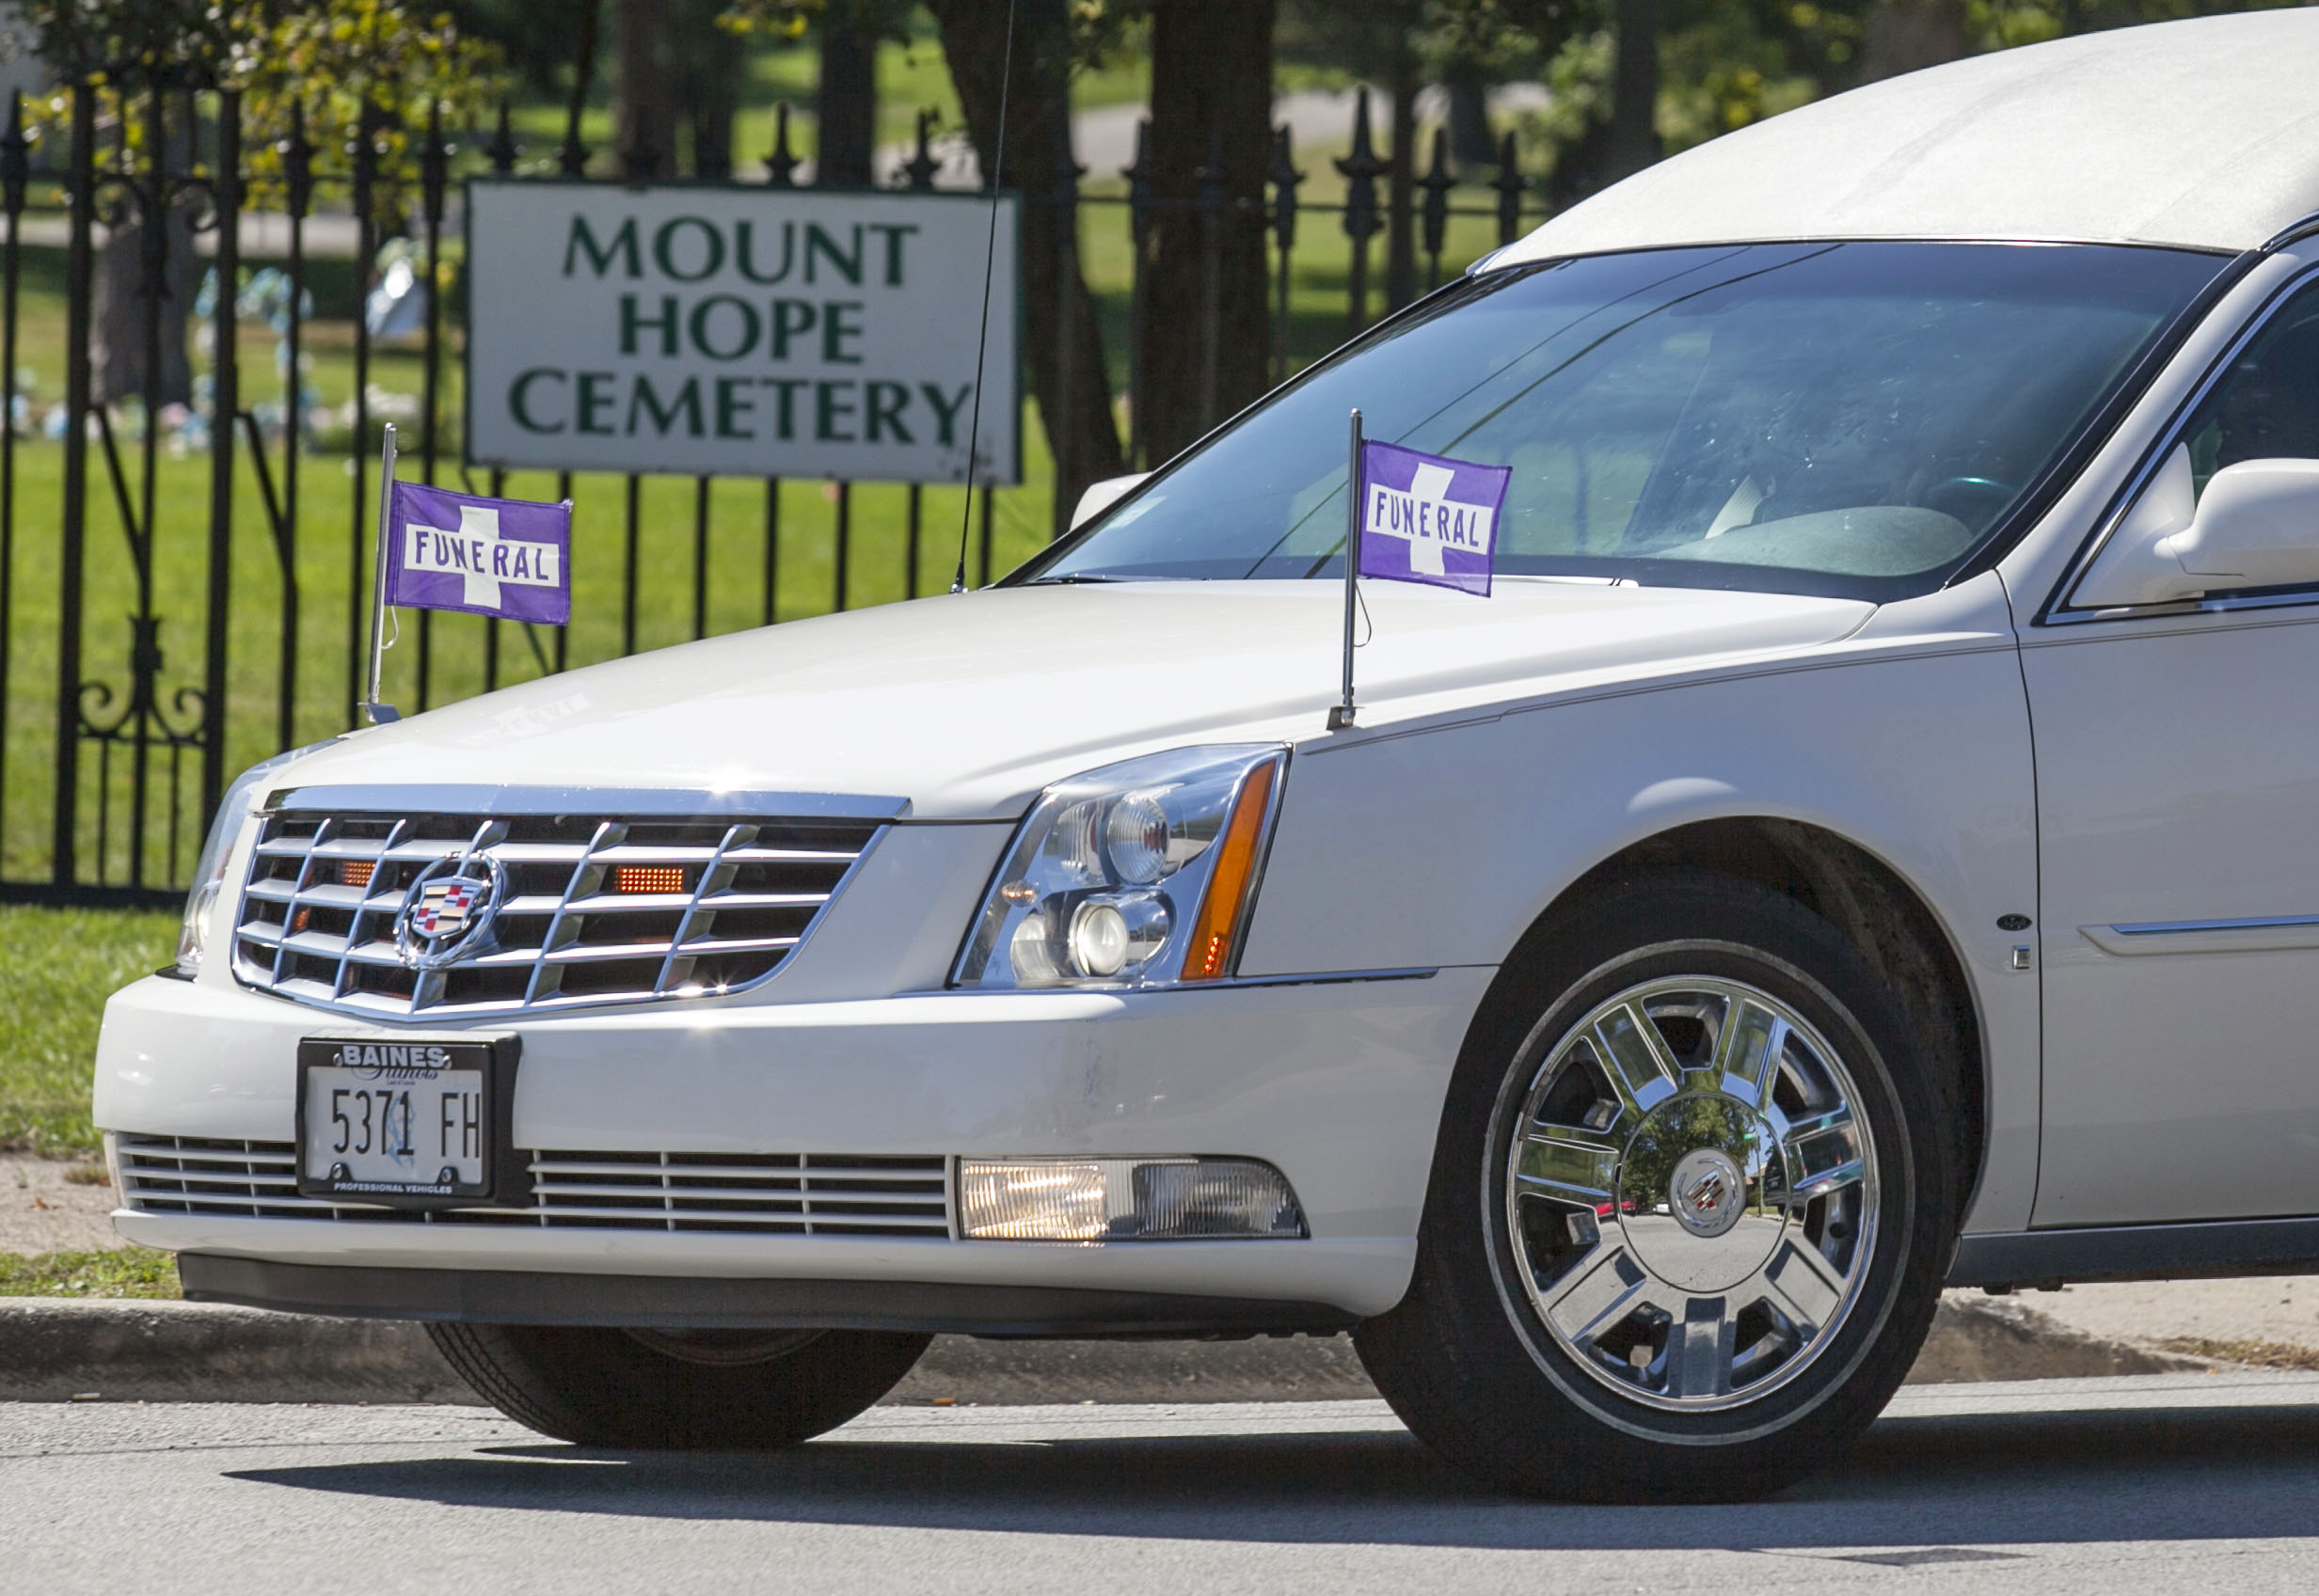 A hearse leads a funeral procession into Mount Hope Cemetery, on Saturday, September 15, 2012.